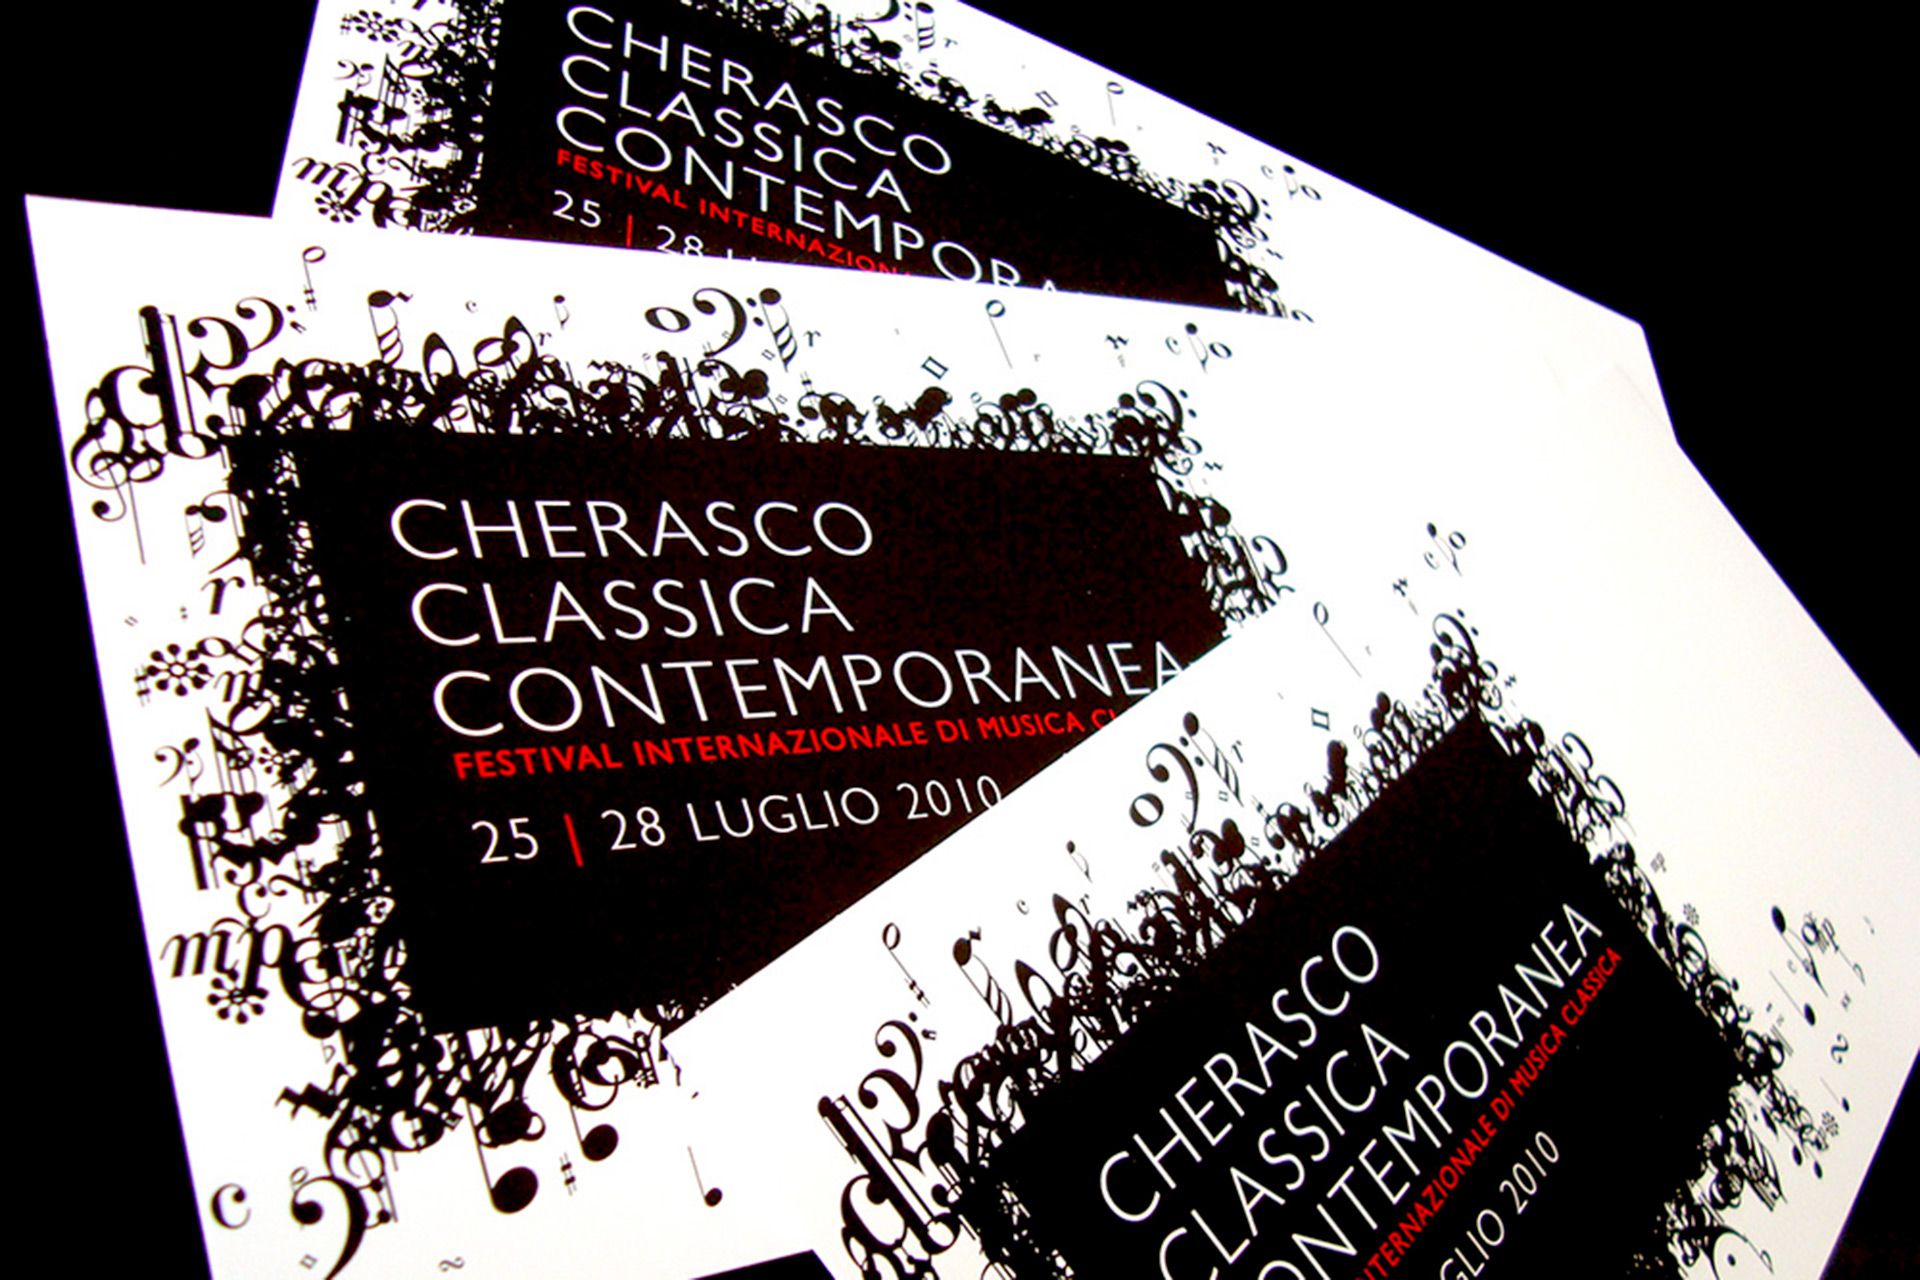 Cherasco Classica Contemporanea